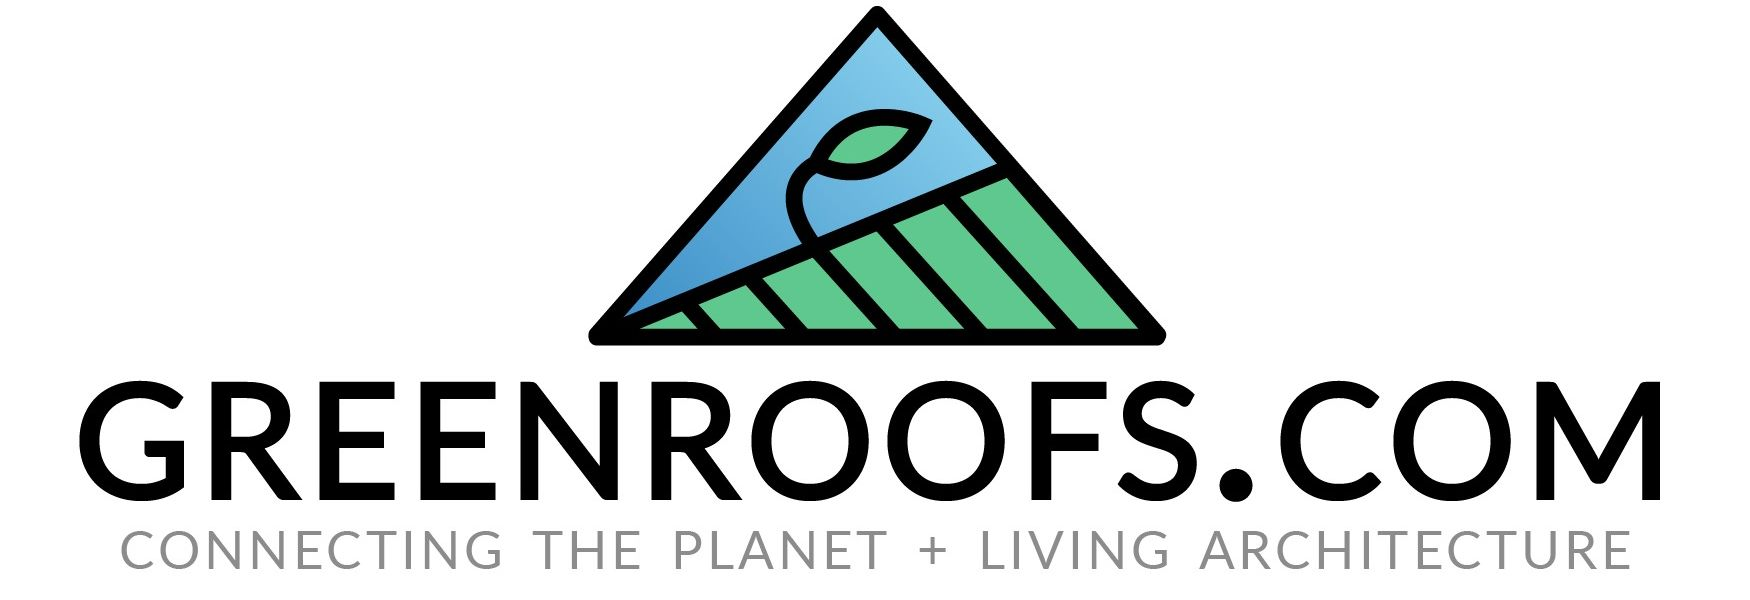 greenroofscom logo with text_New_2019.jpg